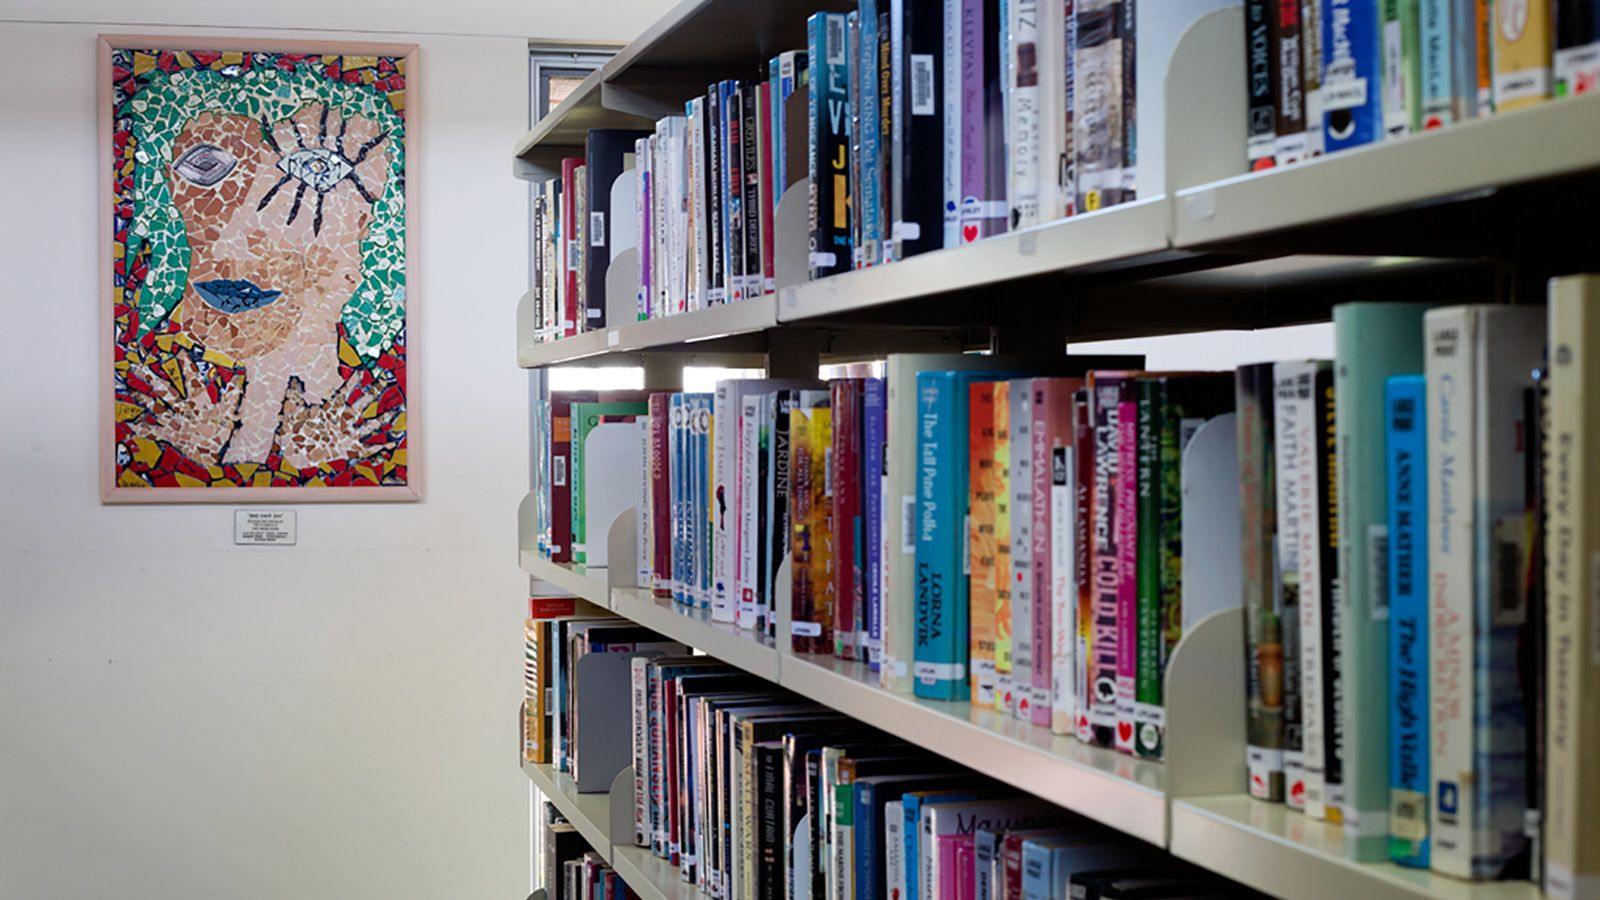 Library shelves with books banner image